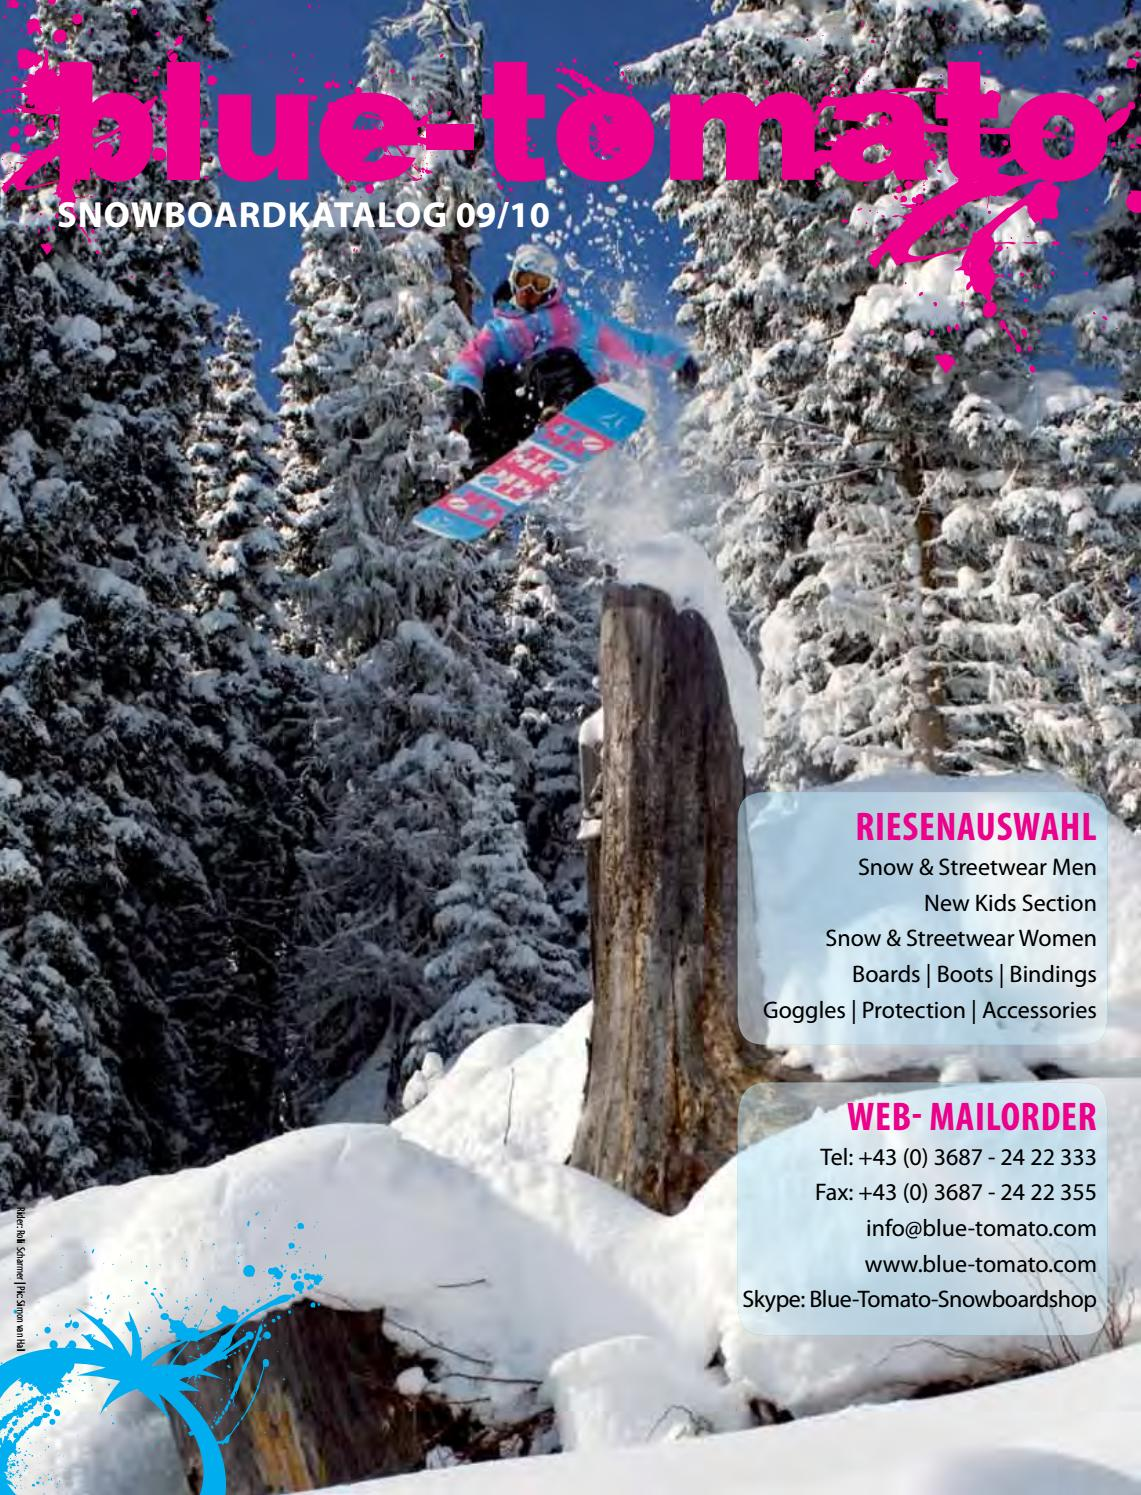 Blue Tomato Snowboardkatalog 2009 10 By Blue Tomato Issuu